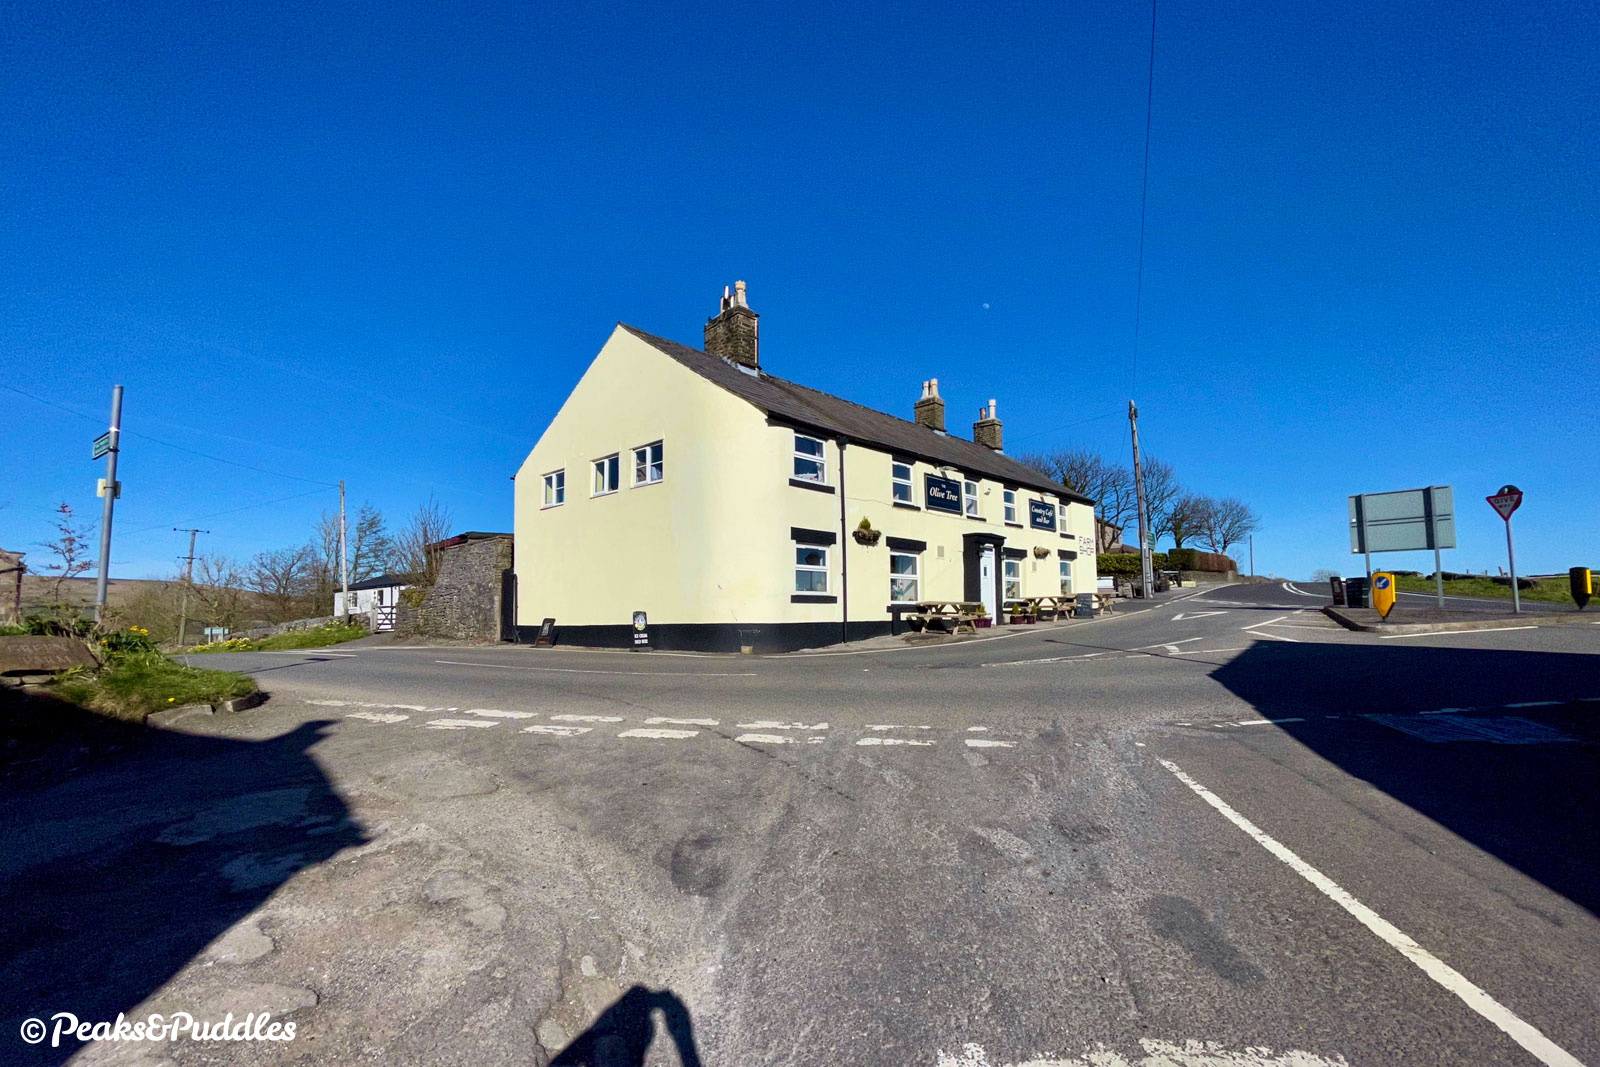 Approaching the A623 junction opposite the pub formerly known as the Wanted Inn. Turn left, avoiding the A623 entirely.